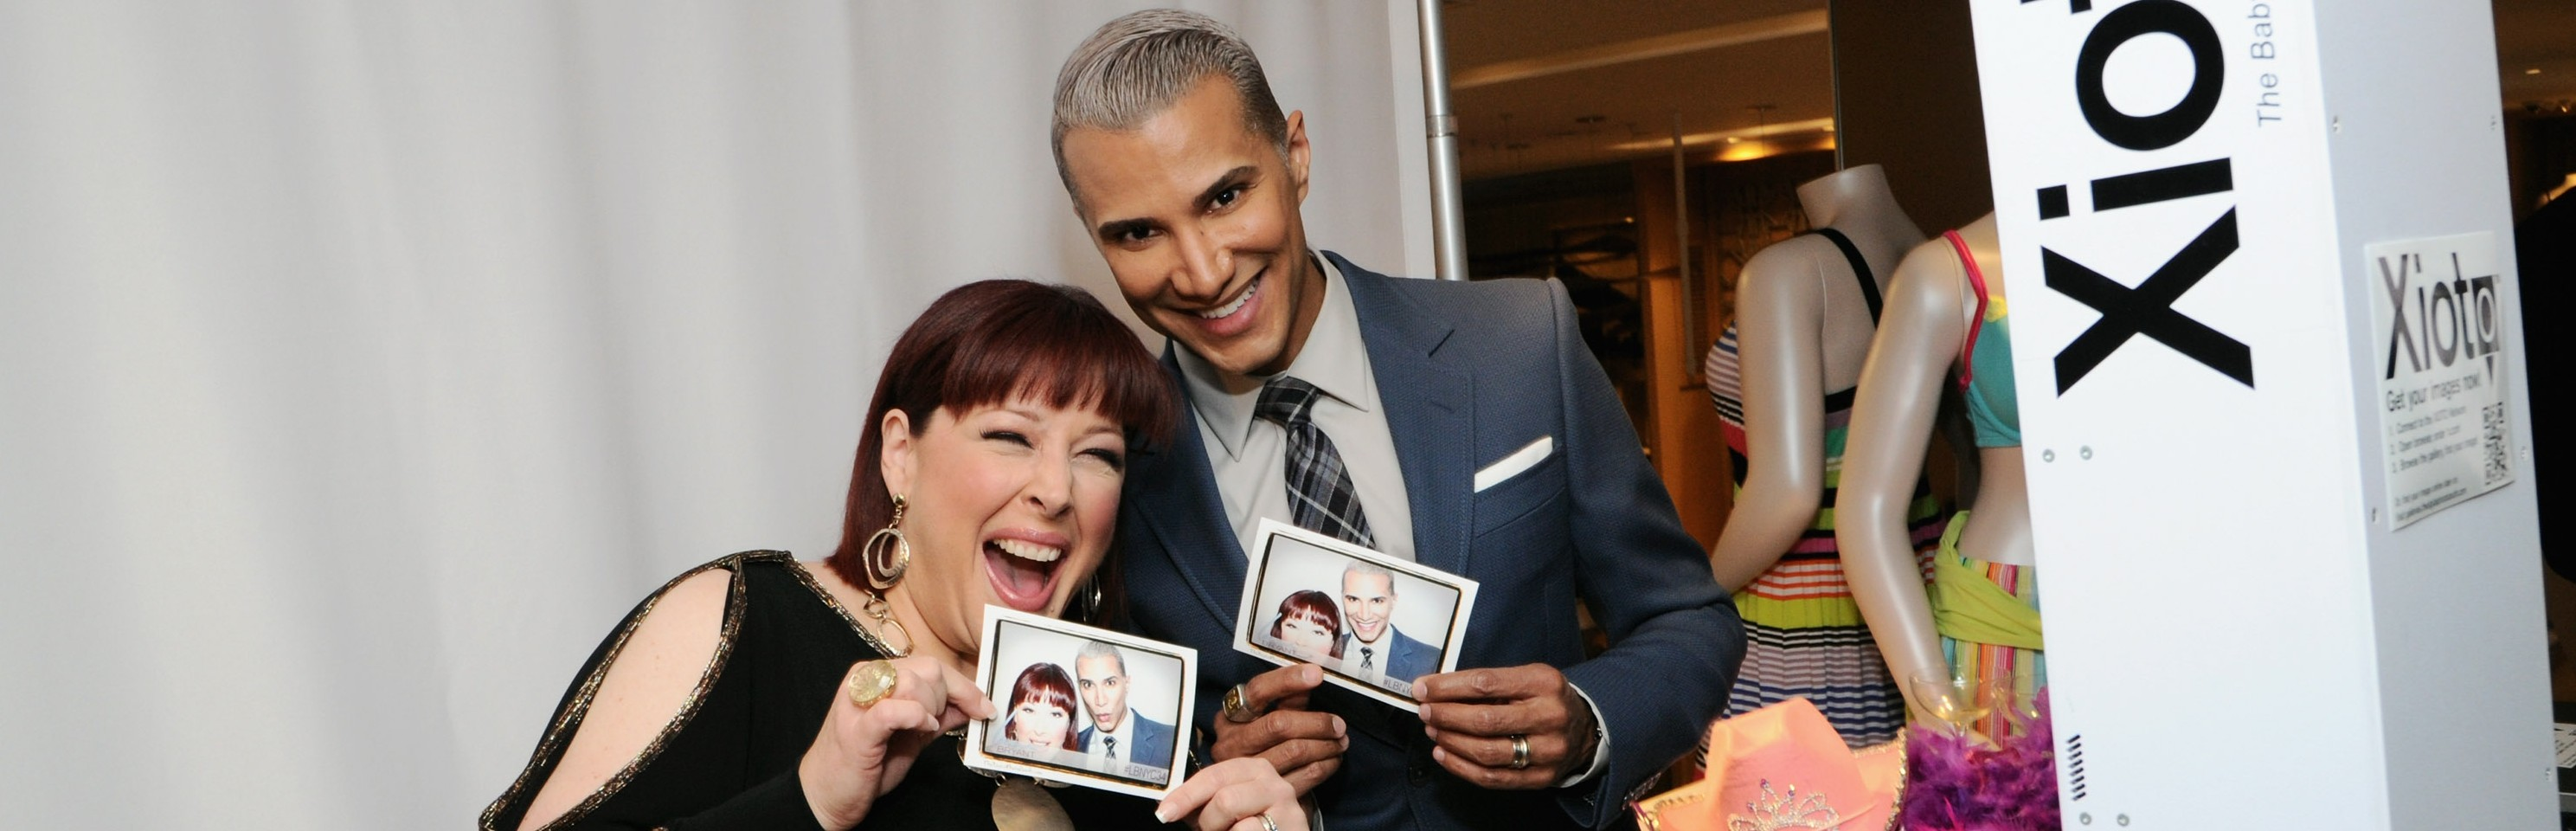 TV personality Jay Manuel and Carnie Wilson at the opening of Lane Bryant's NYC Flagship on West 34th Street on Feb. 28. (Ilya S. Savenok/Getty Images)